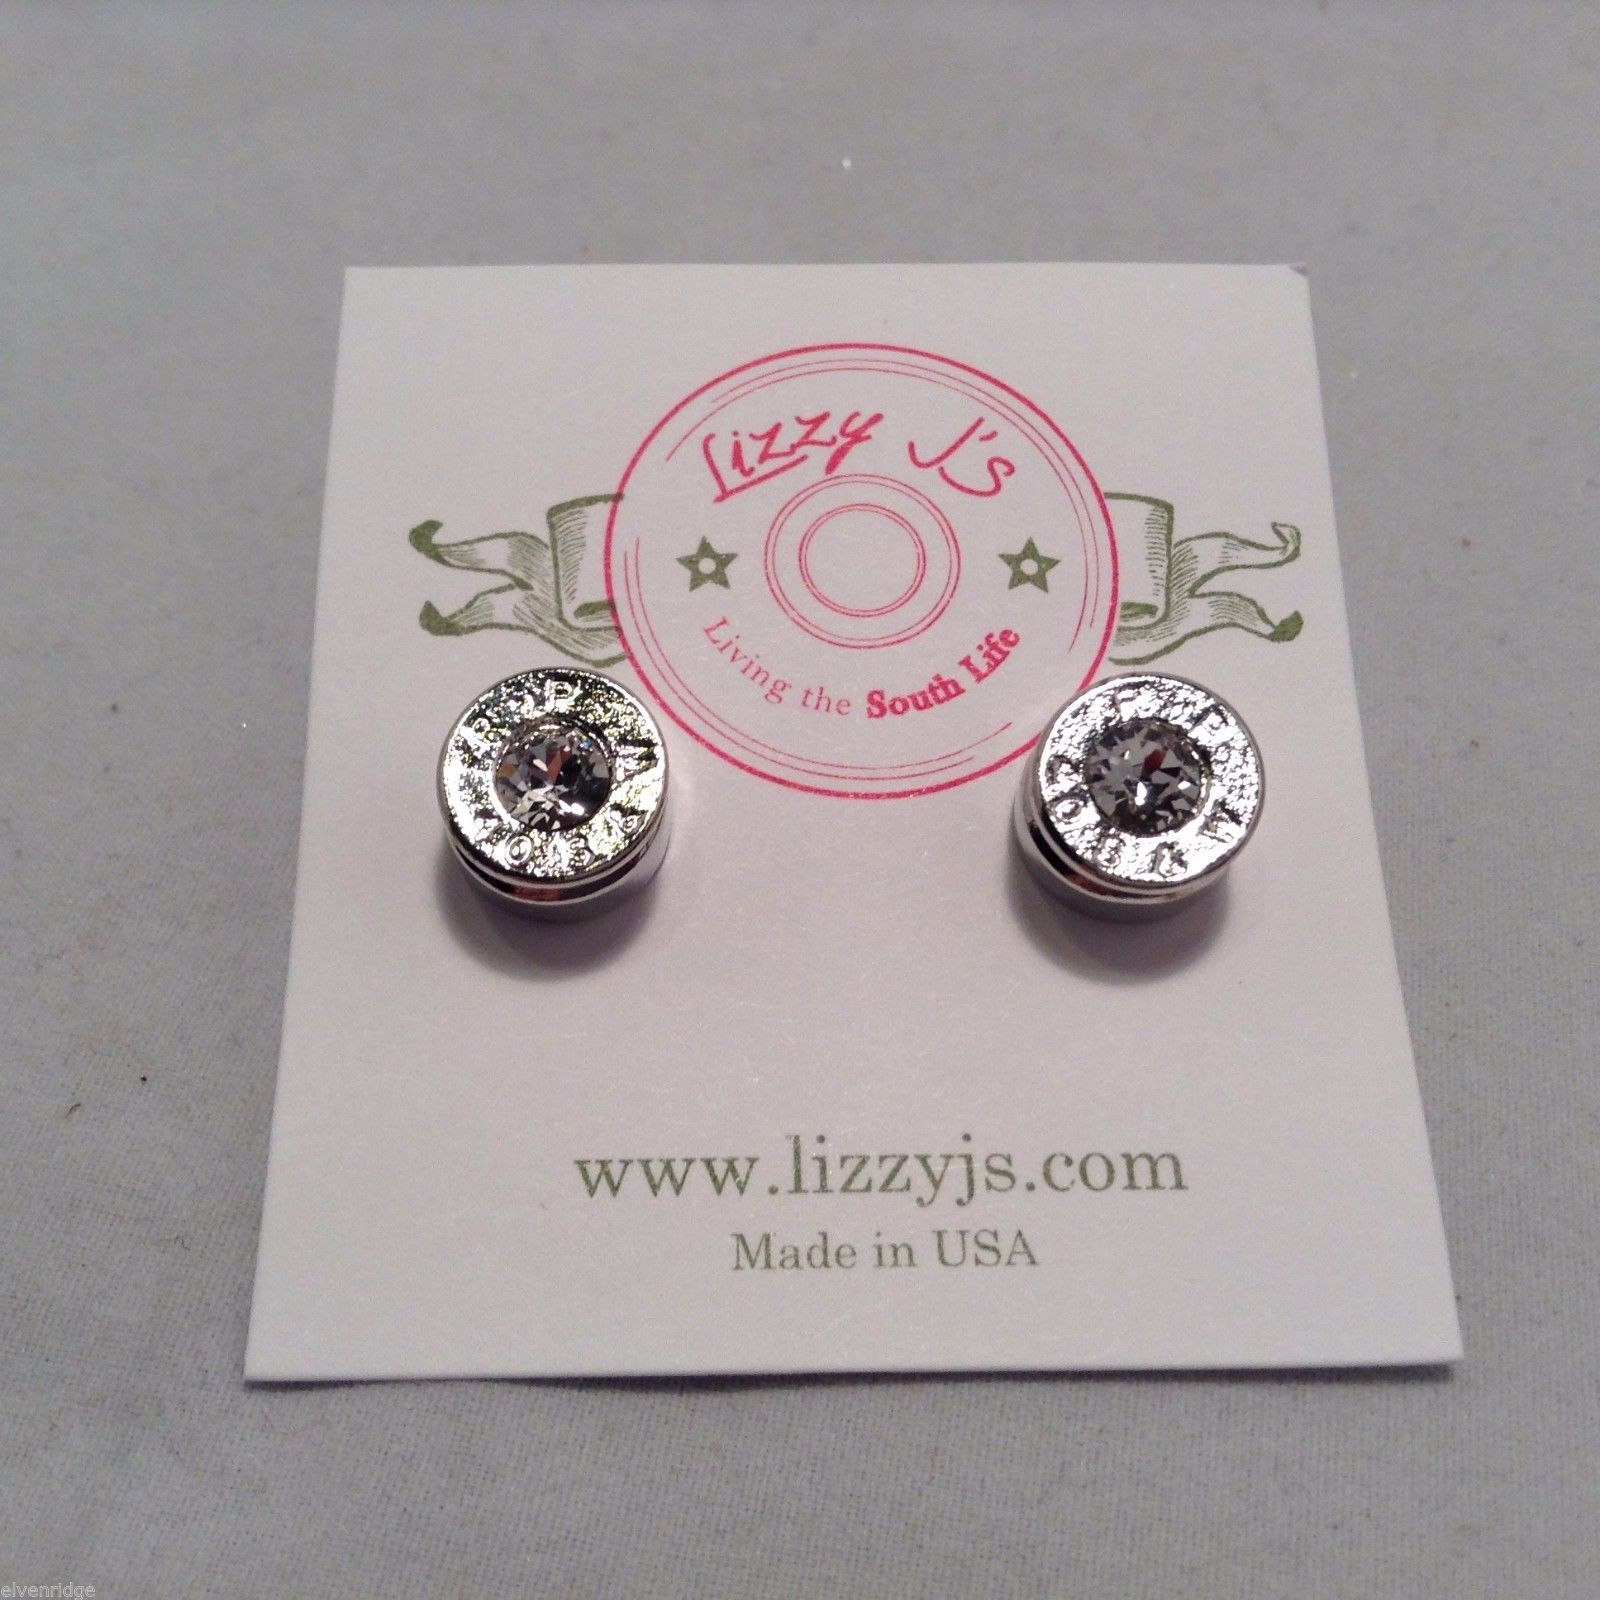 Lizzy J bullet stud silver traditional finish earrings USA made w crystal center